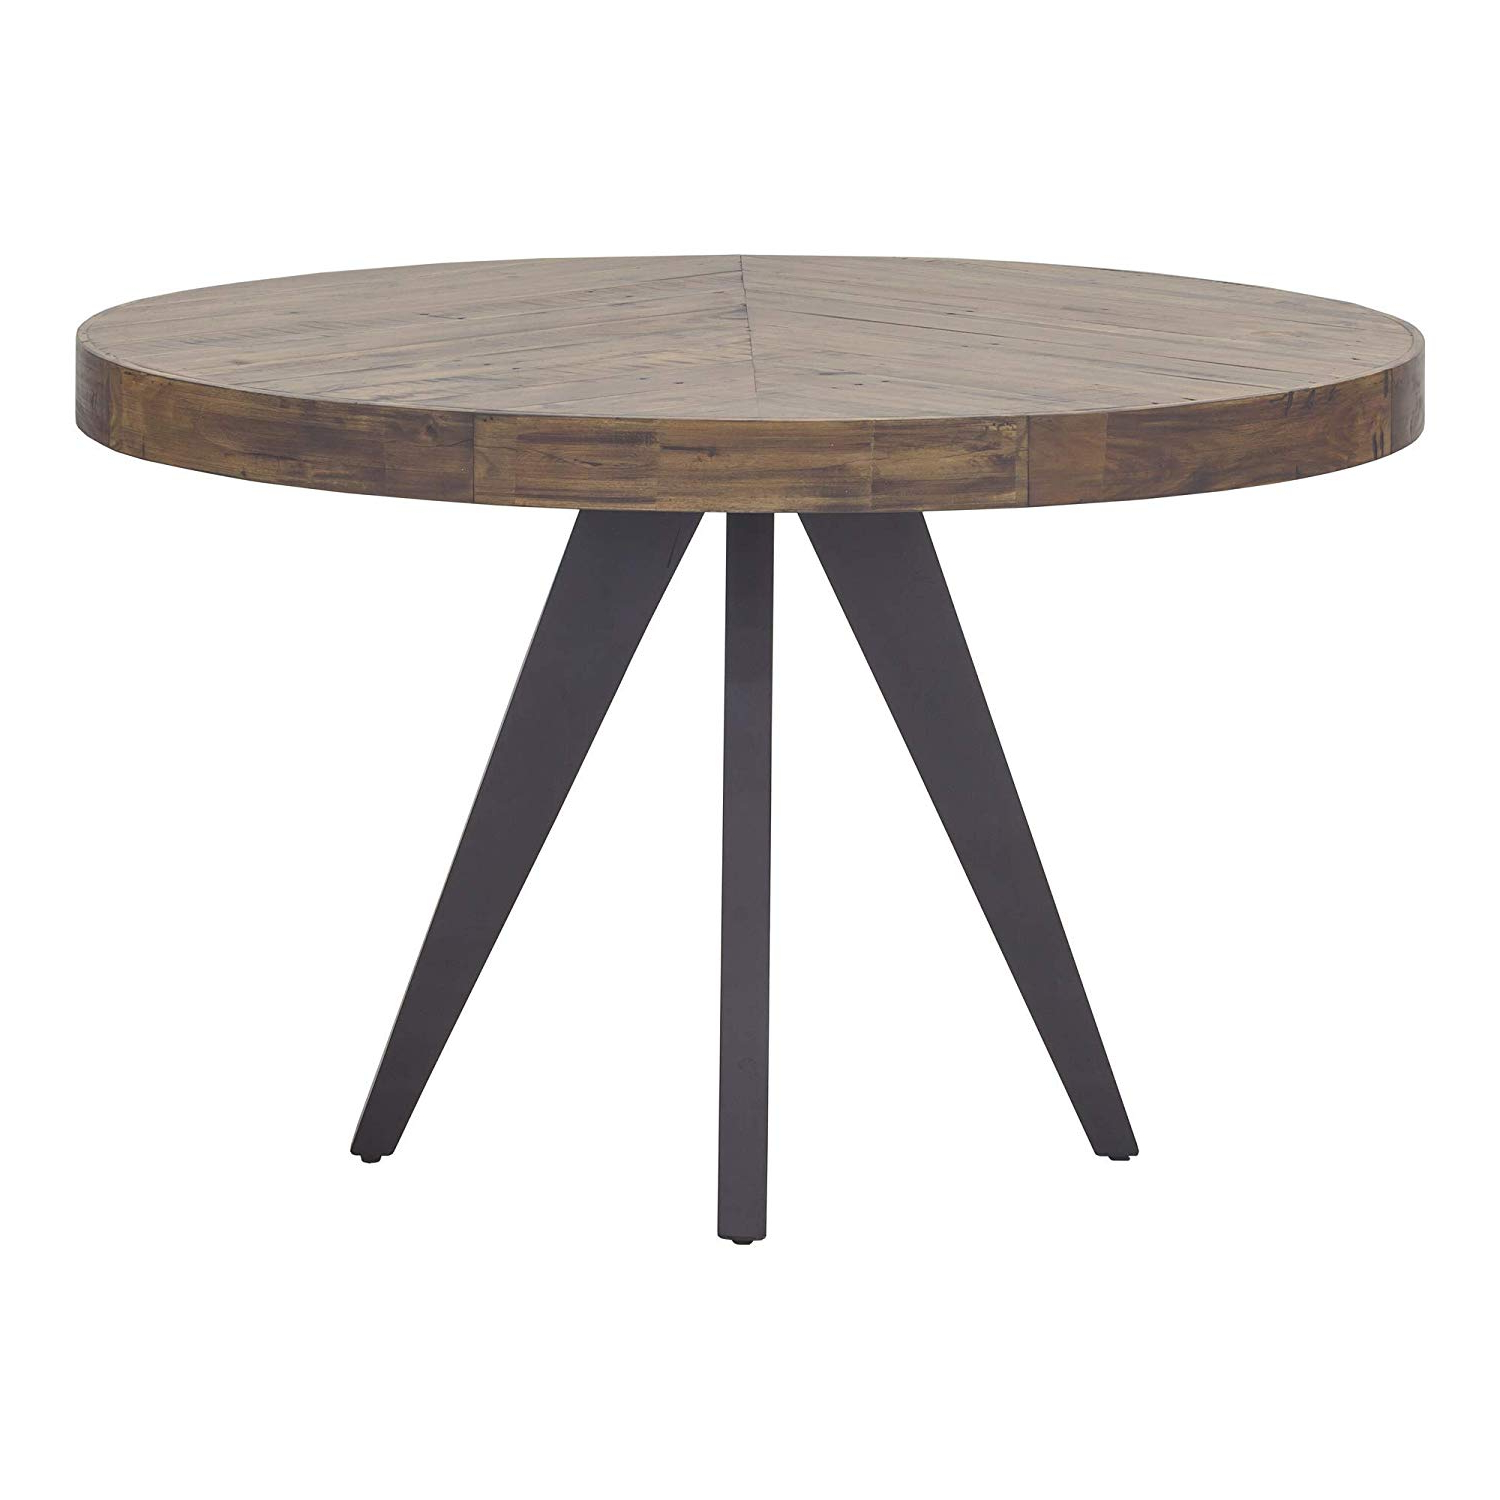 Acacia Dining Tables With Black Legs Pertaining To Trendy Amazon – Moe's Home Collection Parq Dining Table, Acacia (View 25 of 25)